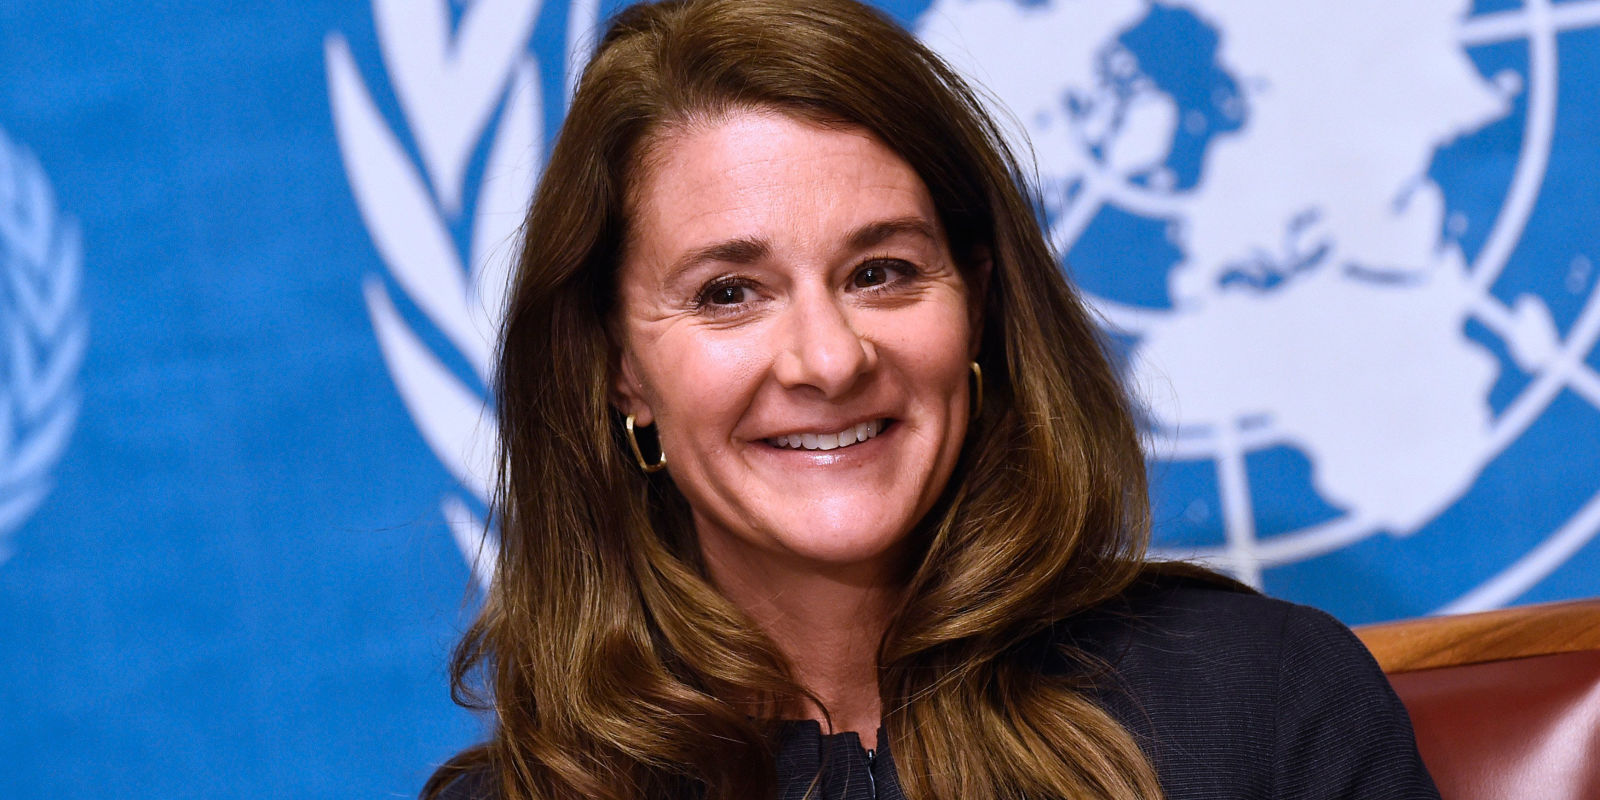 Melinda Gates It39s not about doing it a man39s way but finding your own